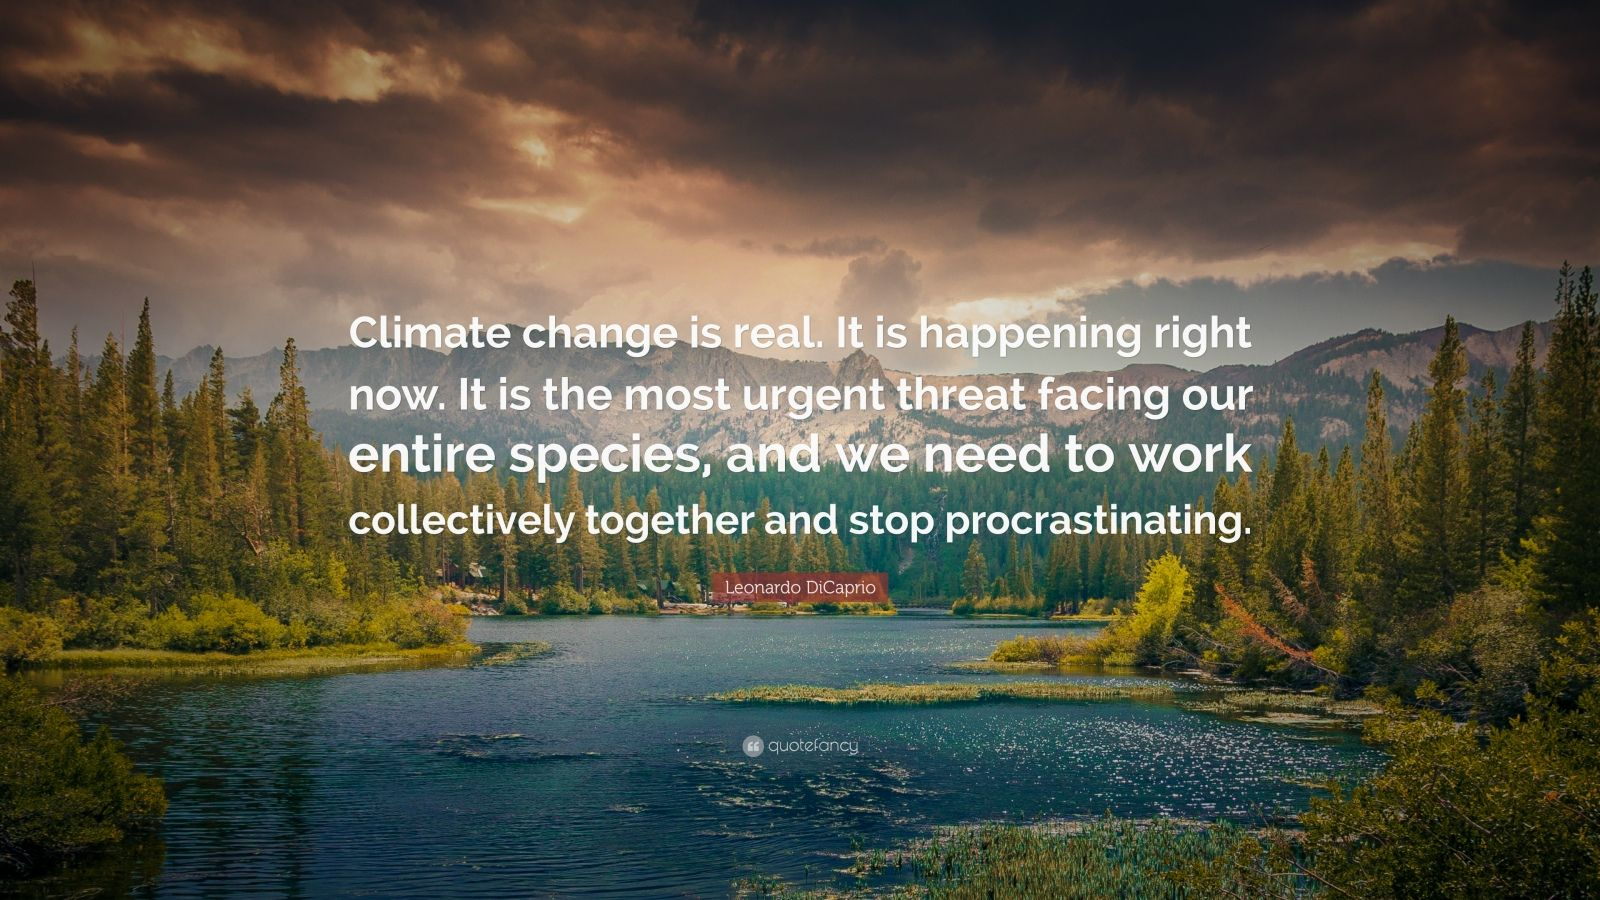 """Leonardo DiCaprio Quote: """"Climate change is real. It is happening right now. It is the most urgent threat facing our entire species, and we need to work collectively together and stop procrastinating."""""""